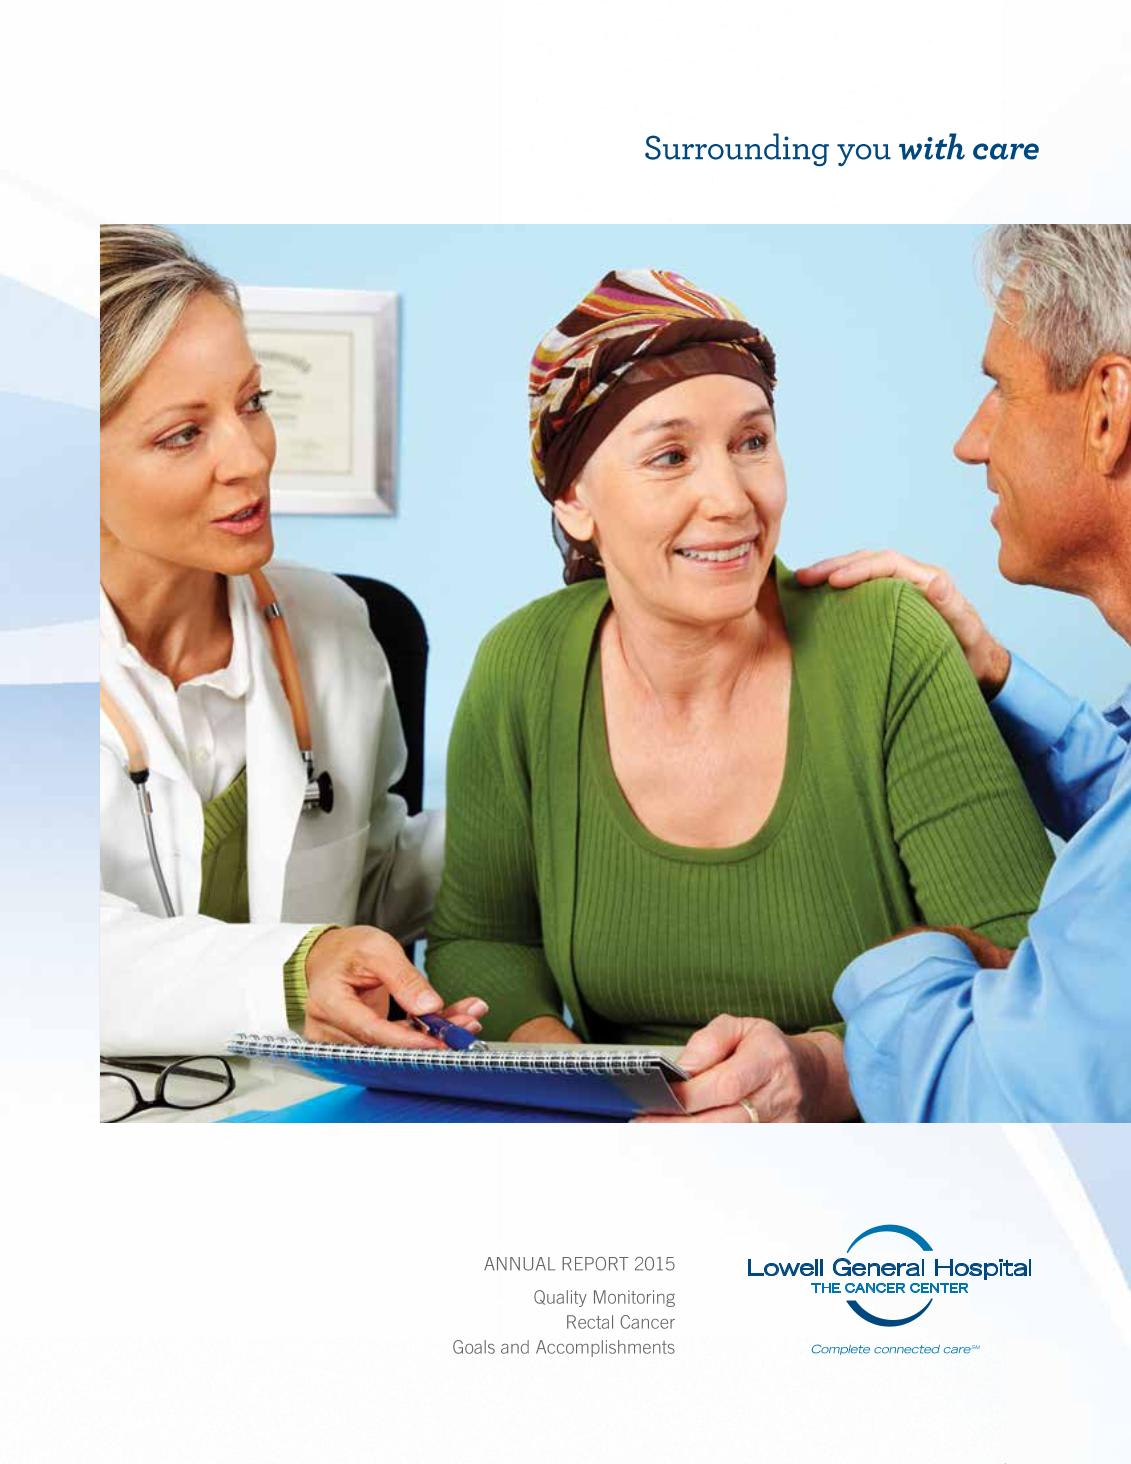 Cancer Center Annual Report 2015